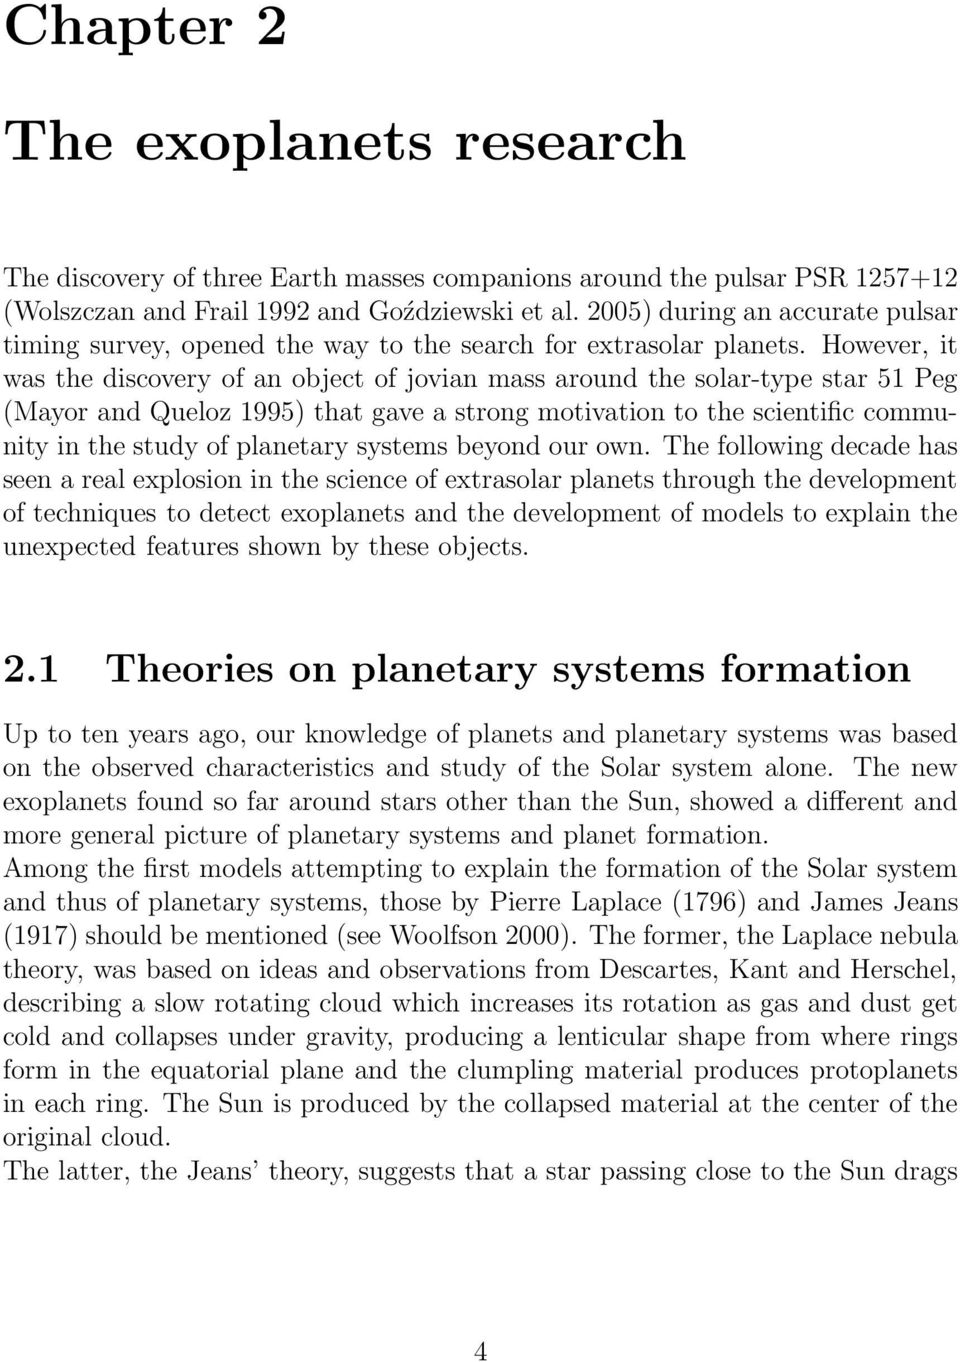 However, it was the discovery of an object of jovian mass around the solar-type star 51 Peg (Mayor and Queloz 1995) that gave a strong motivation to the scientific community in the study of planetary